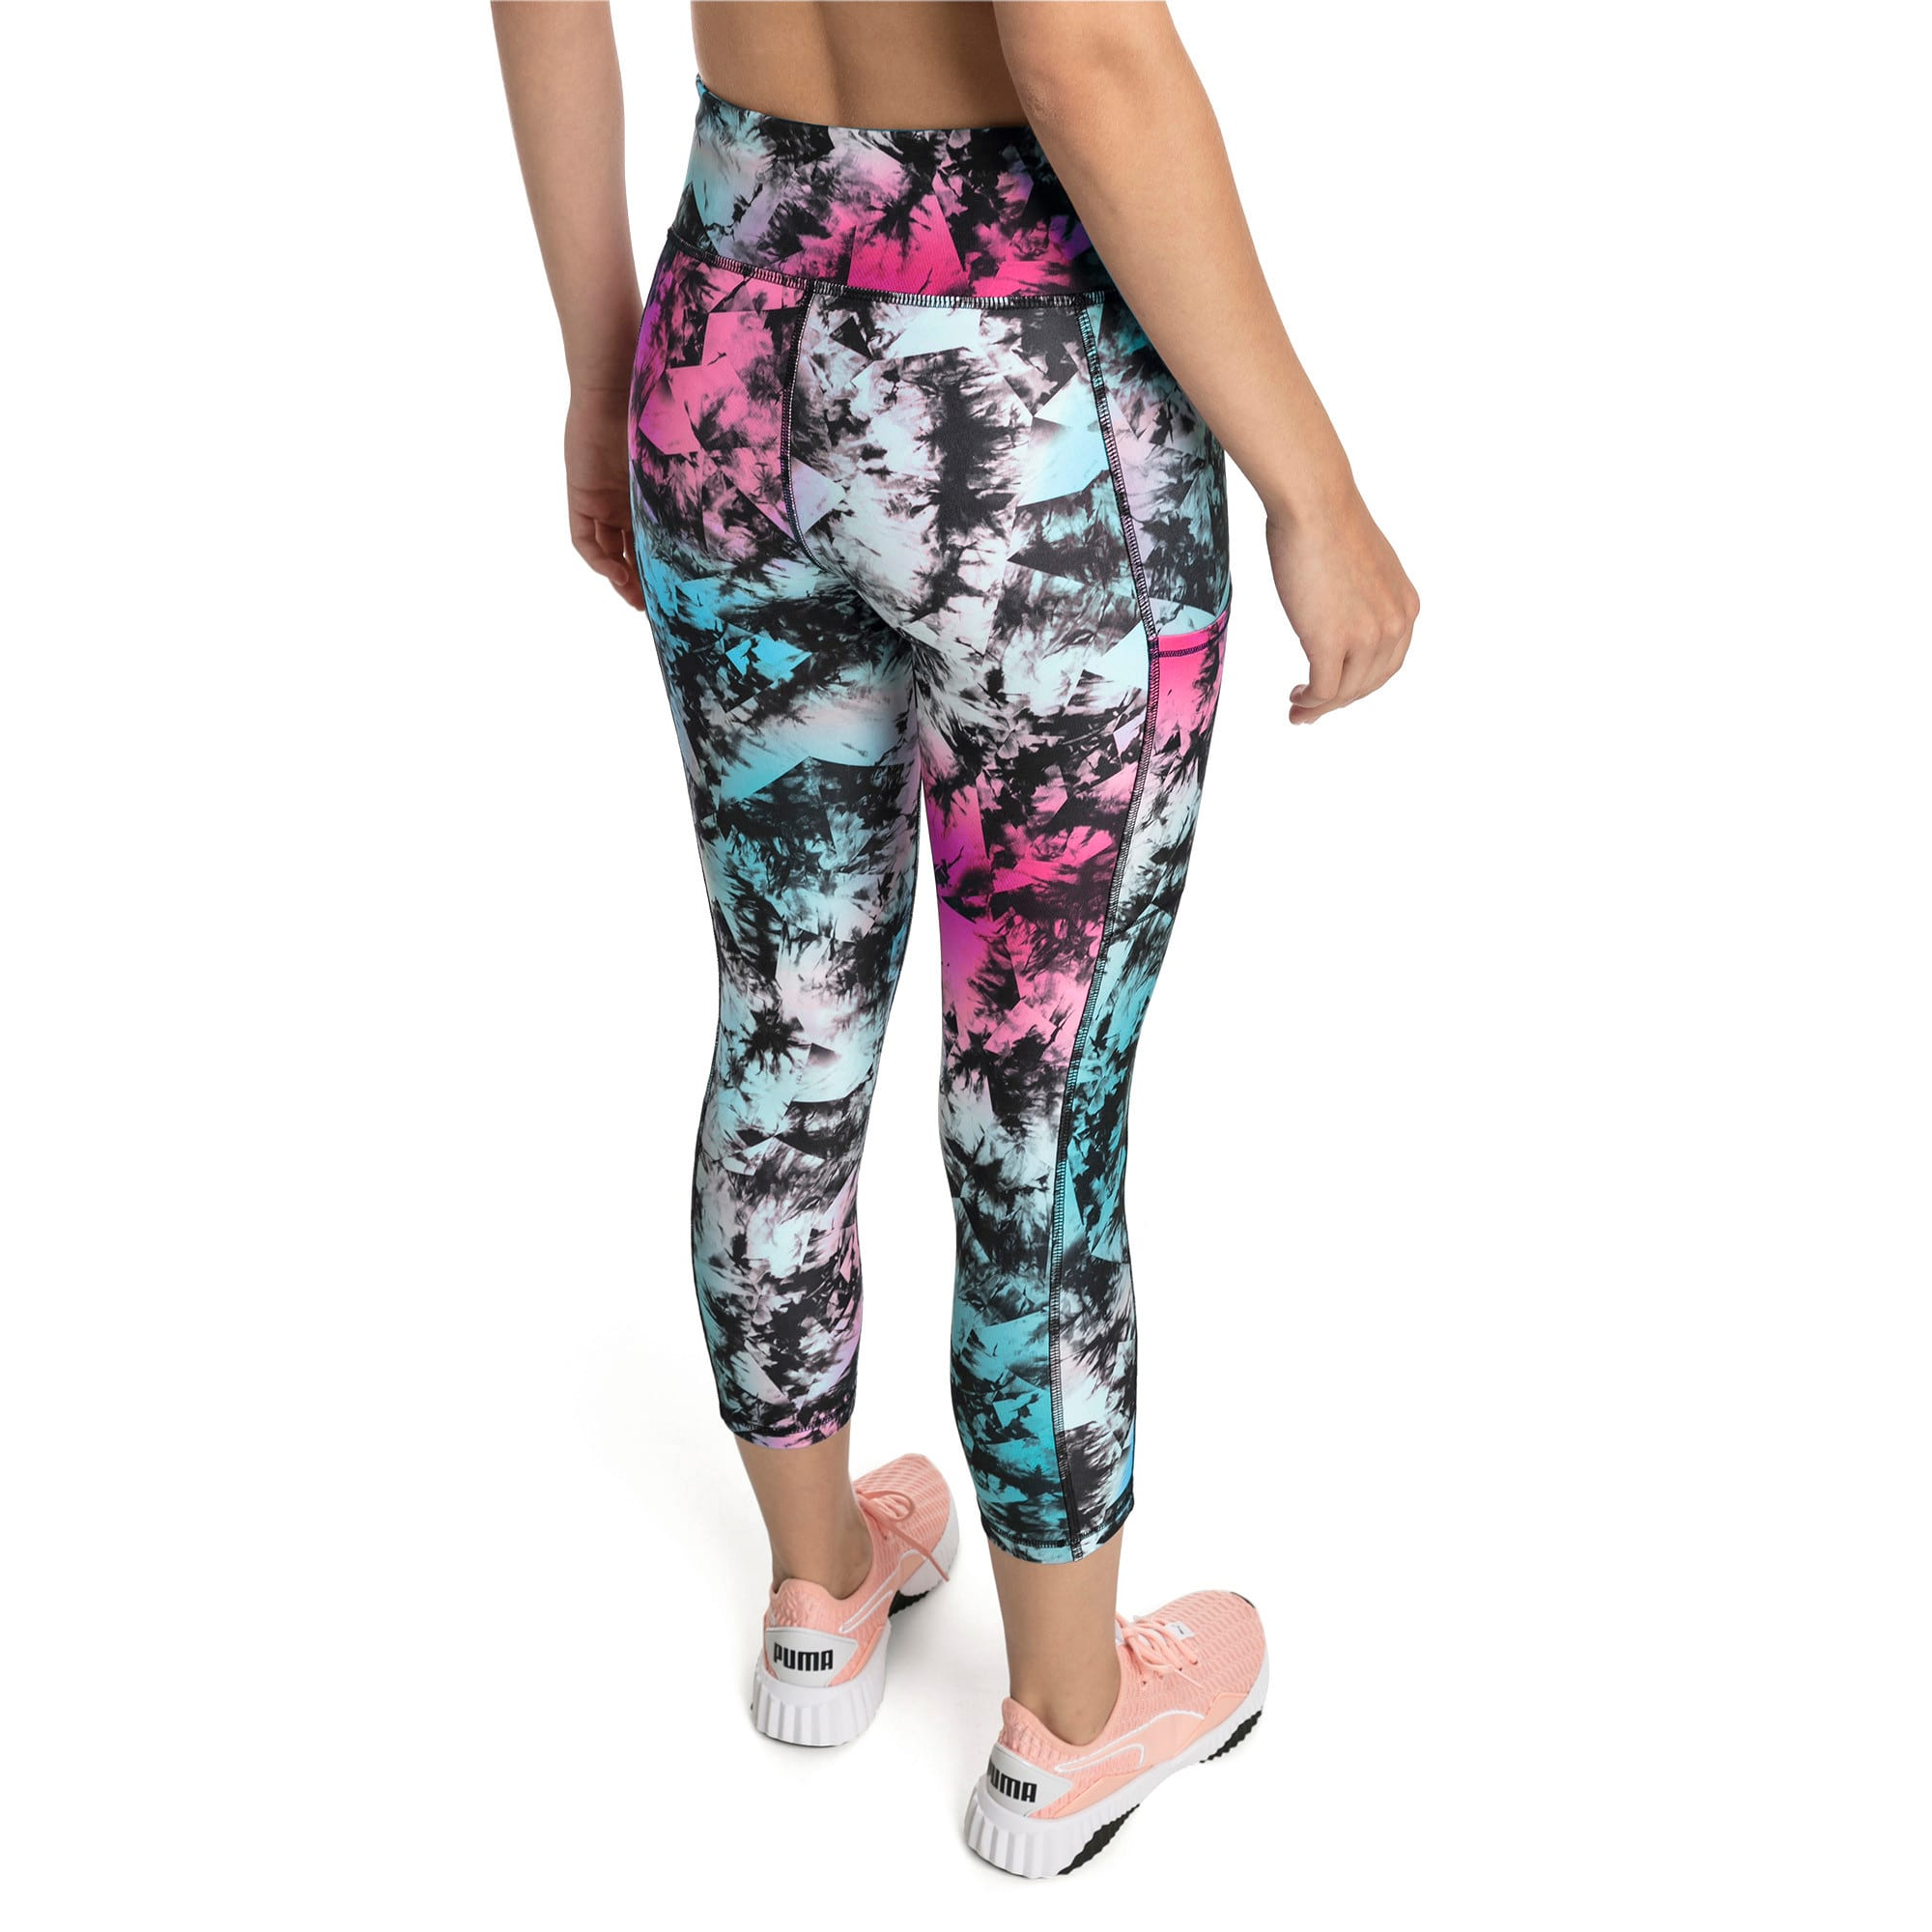 Thumbnail 2 of Stand Out Women's Training Leggings, puma black-Multi color, medium-IND